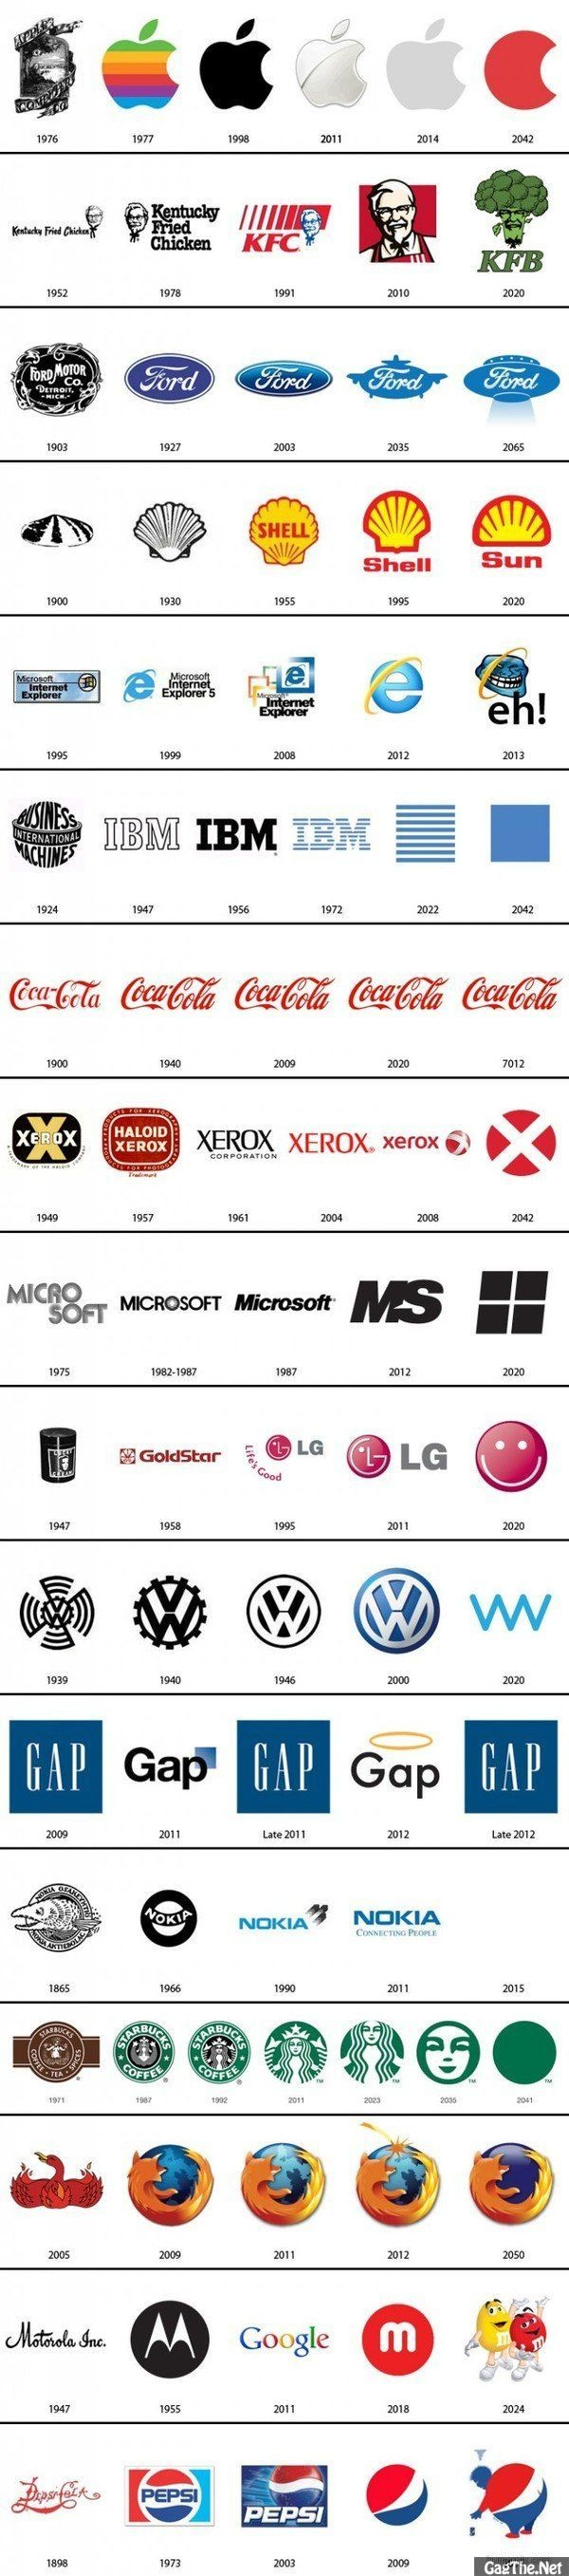 The evolution of the logo.